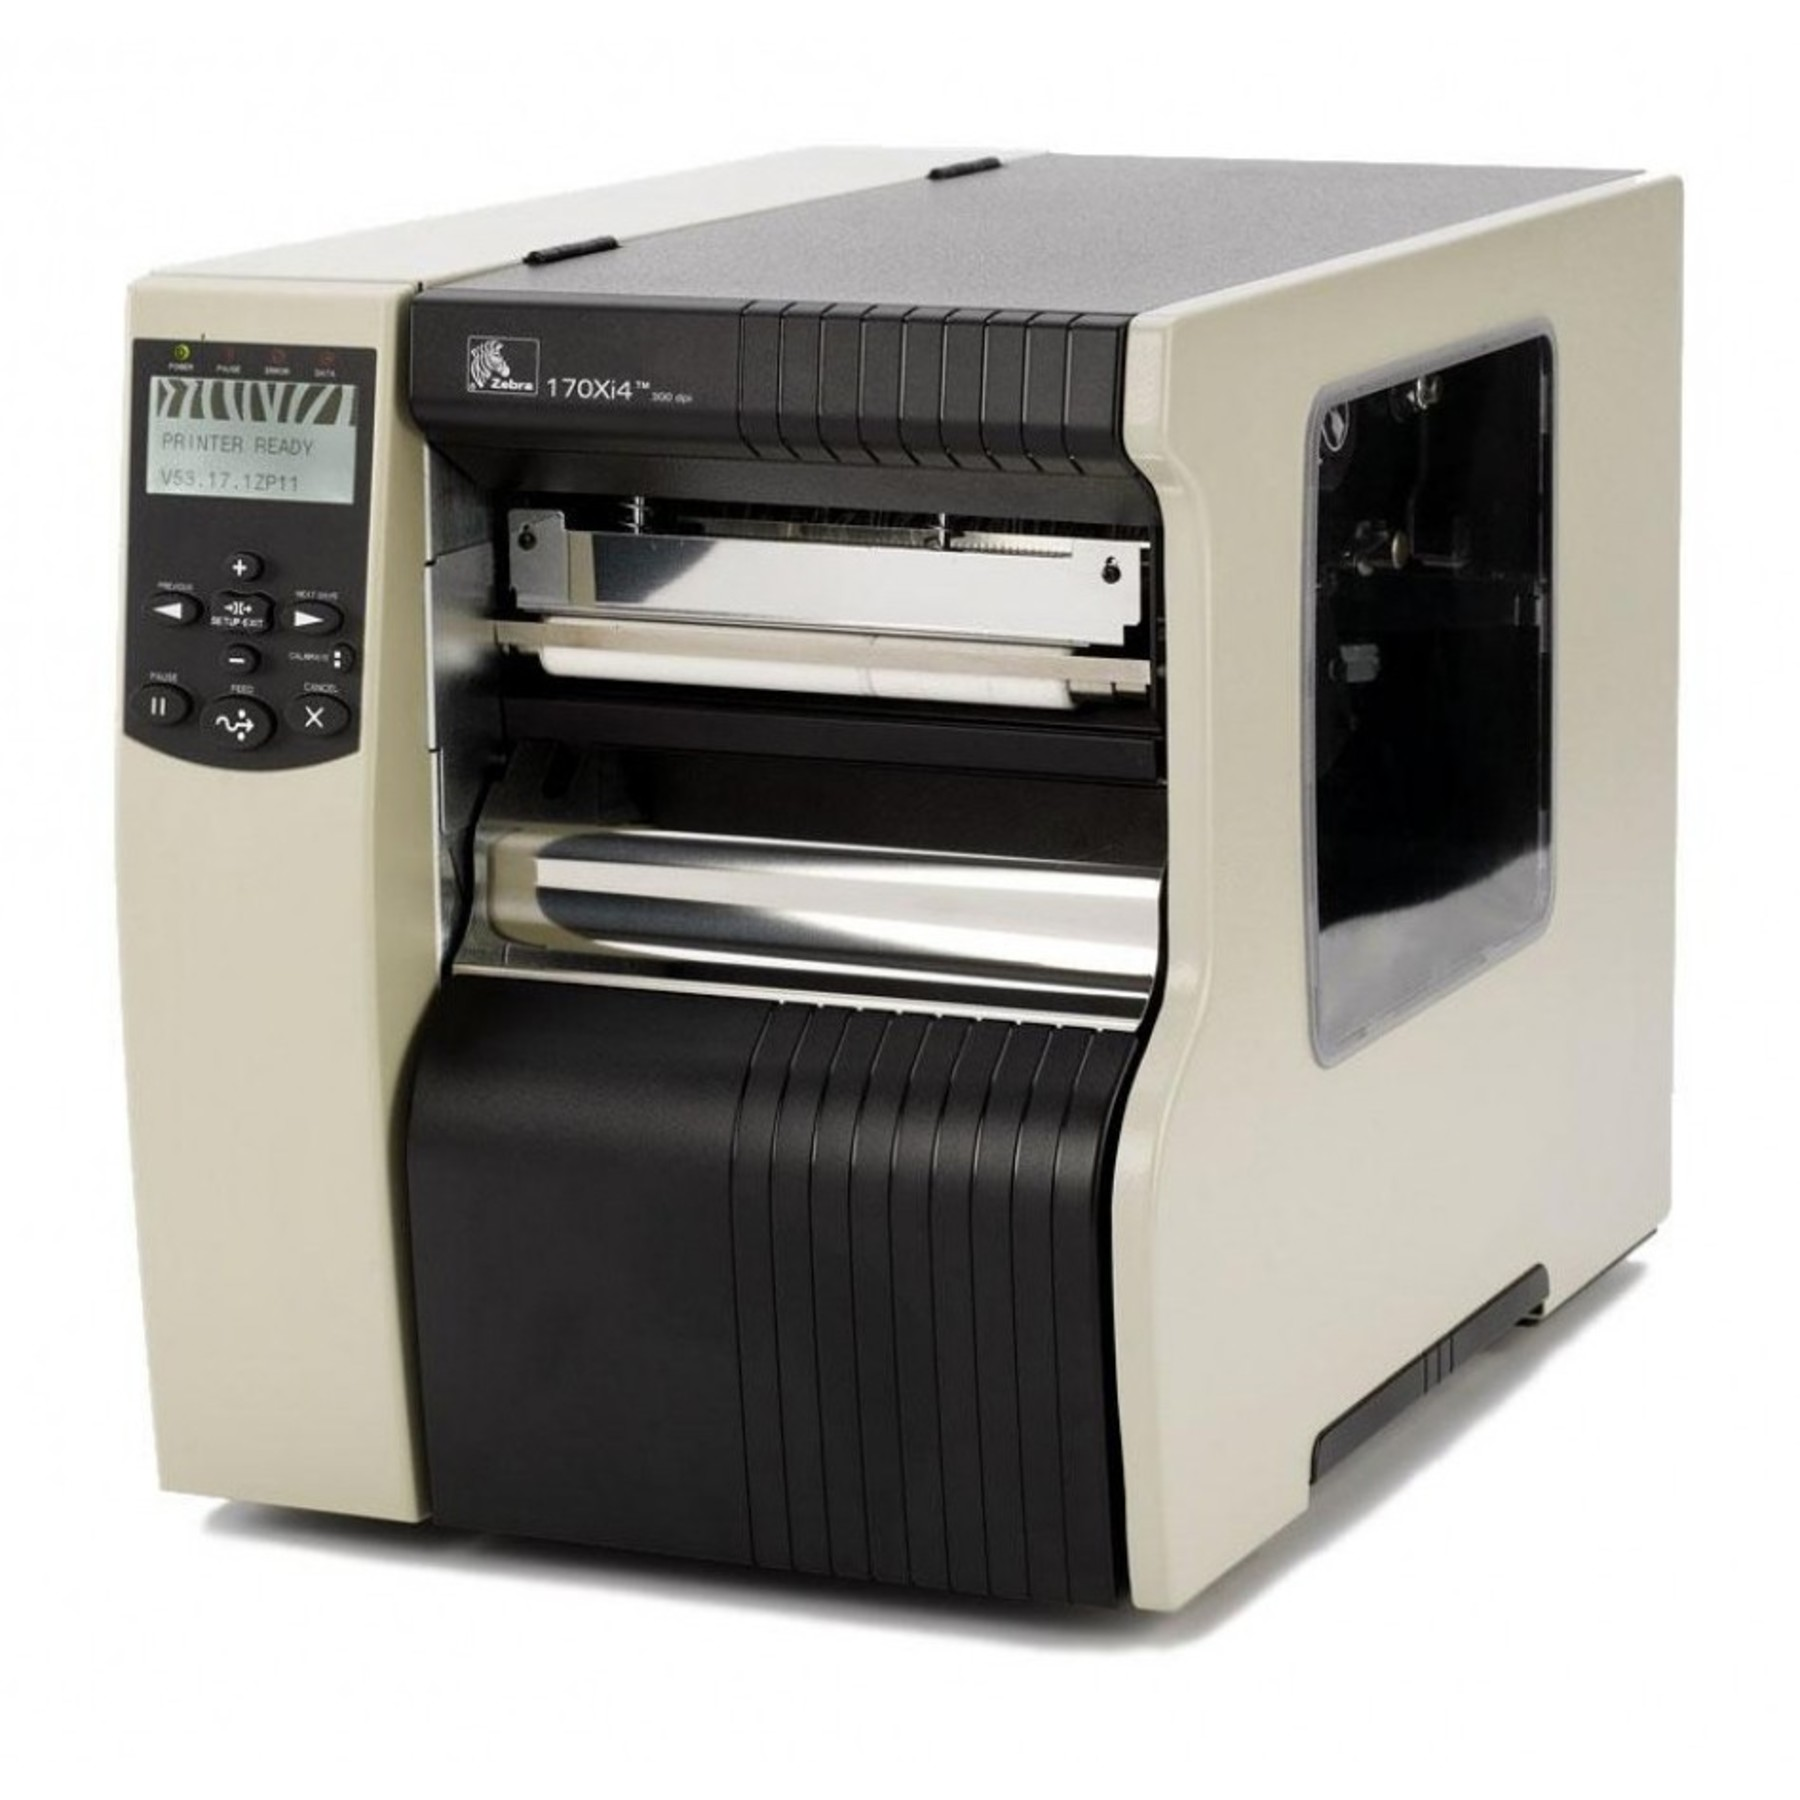 Zebra 170Xi4 Industrial Label Printer (203 Dpi)